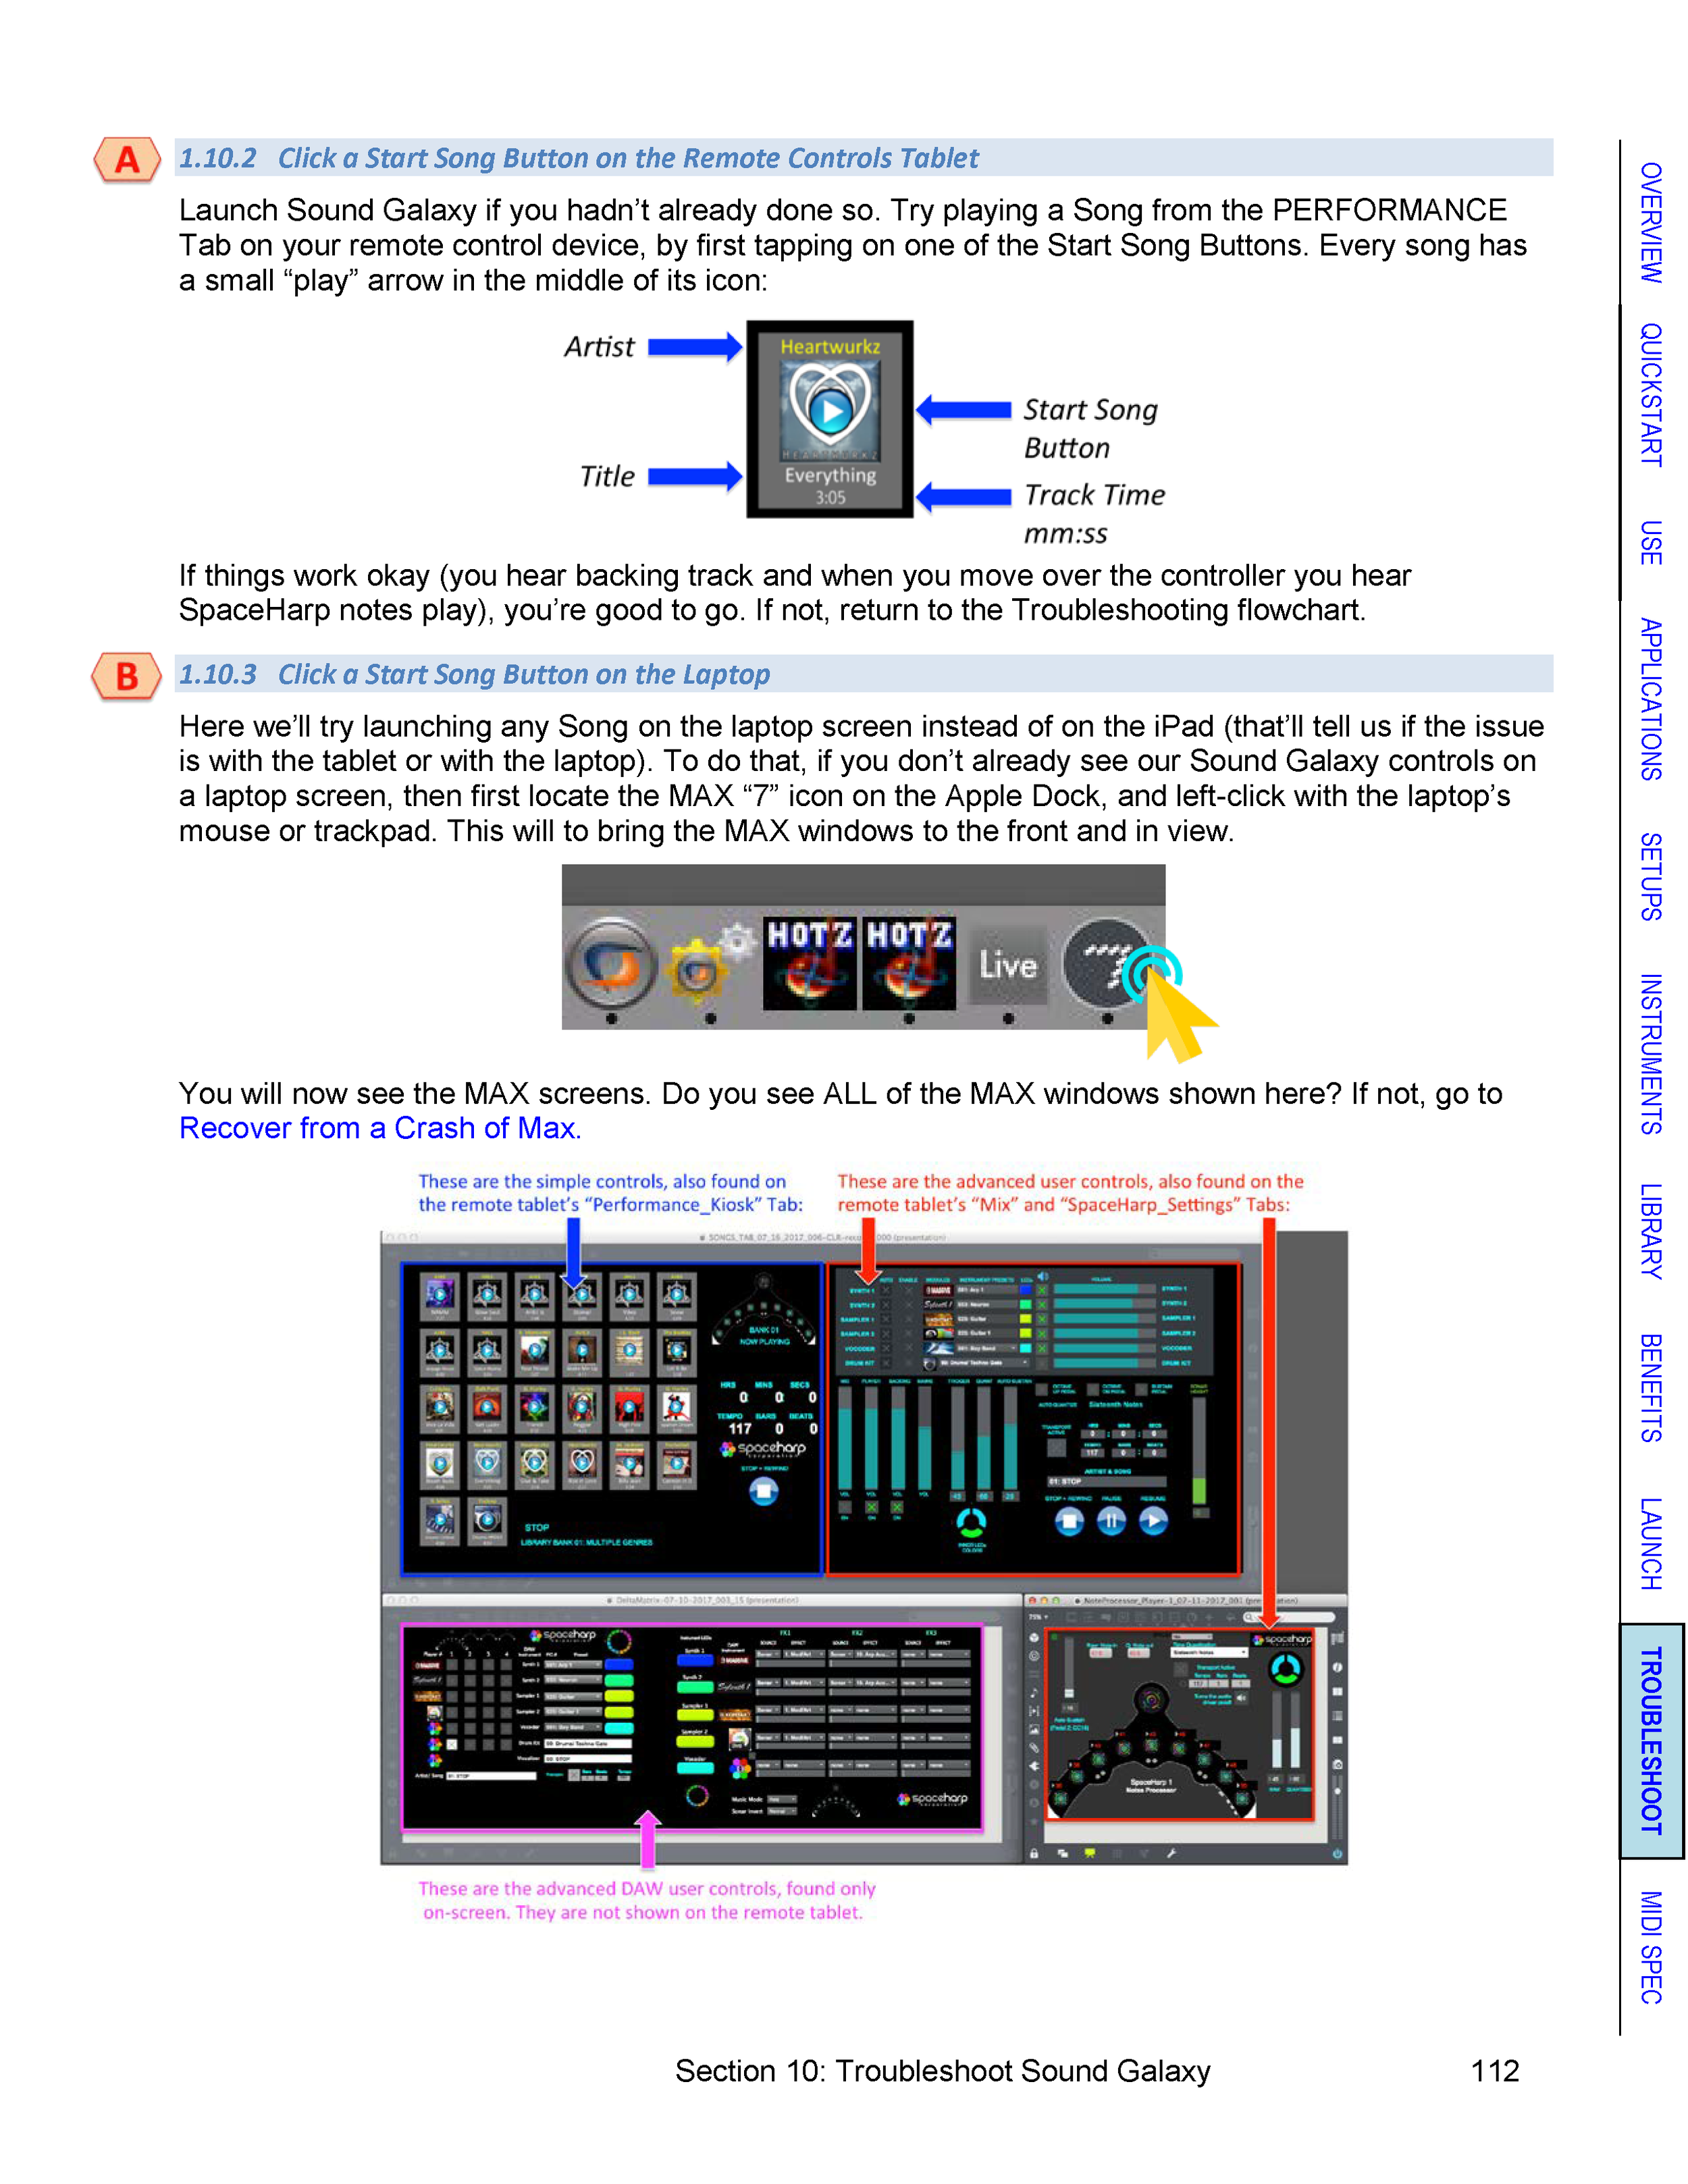 Sound_Galaxy_2_User_Guide_Oct-10-2017_released_Page_112.png